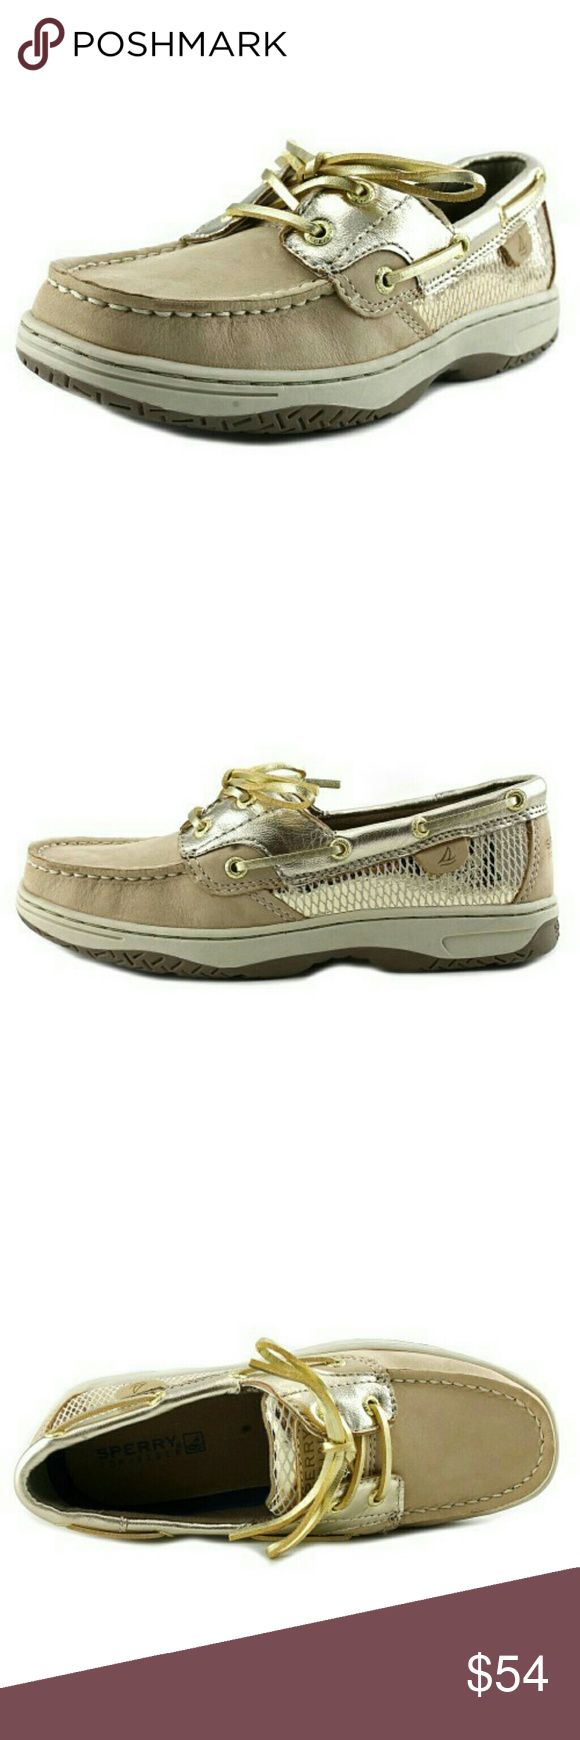 🆕Sperry Top-Sider Girls Bluefish Boat Shoes Description  The Sperry Top Sider Bluefish Casual Shoes feature a Suede upper with a Moc Toe . The Man-Made outsole lends lasting traction and wear.      YG54717     Brand Color: Silver Cloud/Gold (Main Color: Beige) New with Tags No Box. Sperry Shoes Slippers